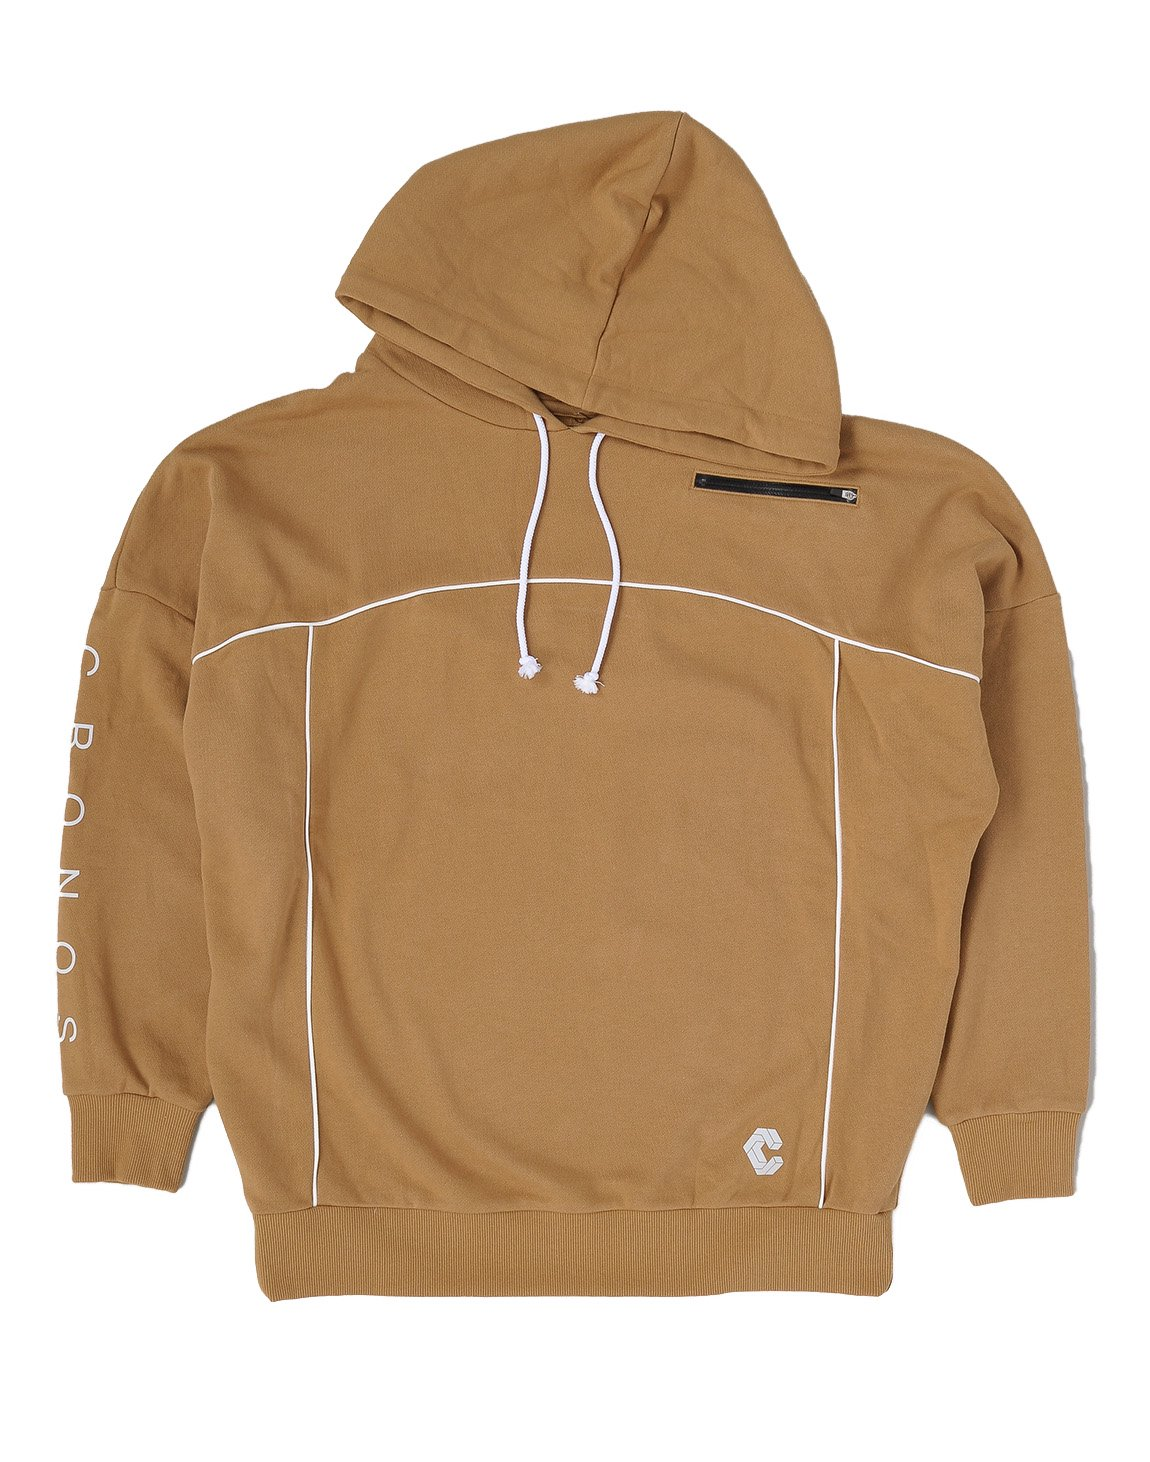 CRONOS ARM LOGO LINE ACCENT BIG SIZE HOODY【BROWN】